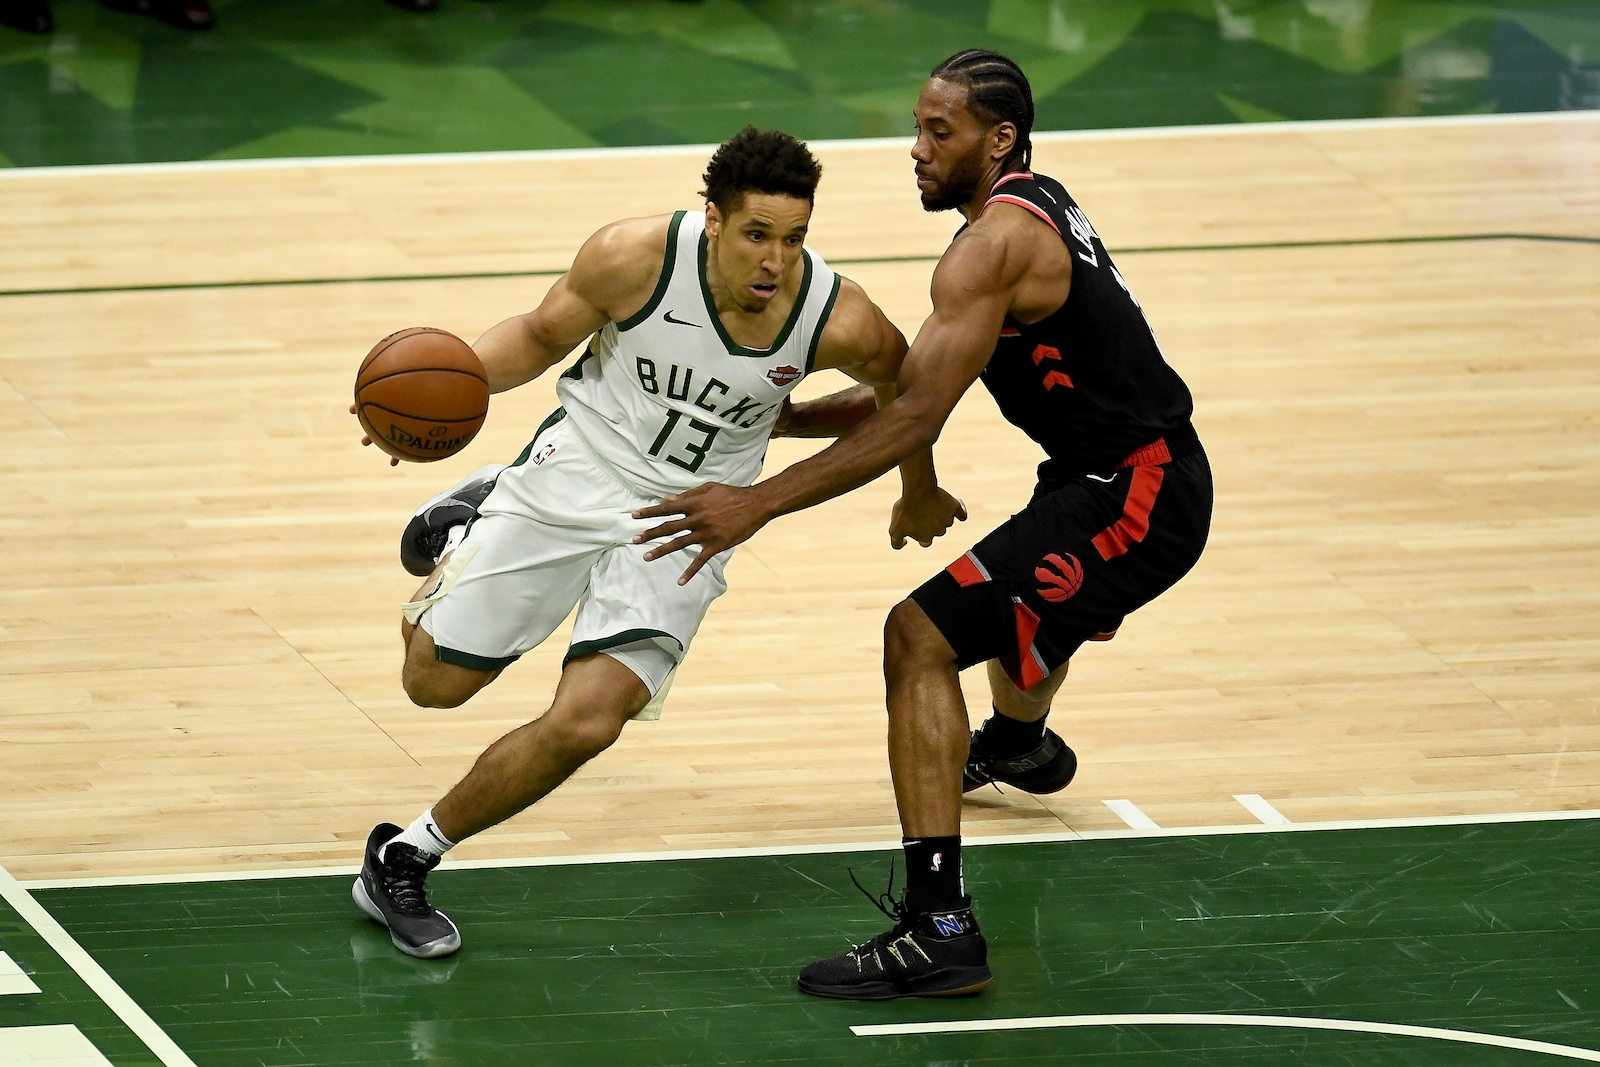 Malcolm Brogdon #13 of the Milwaukee Bucks dribbles the ball while being guarded by Kawhi Leonard #2 of the Toronto Raptors